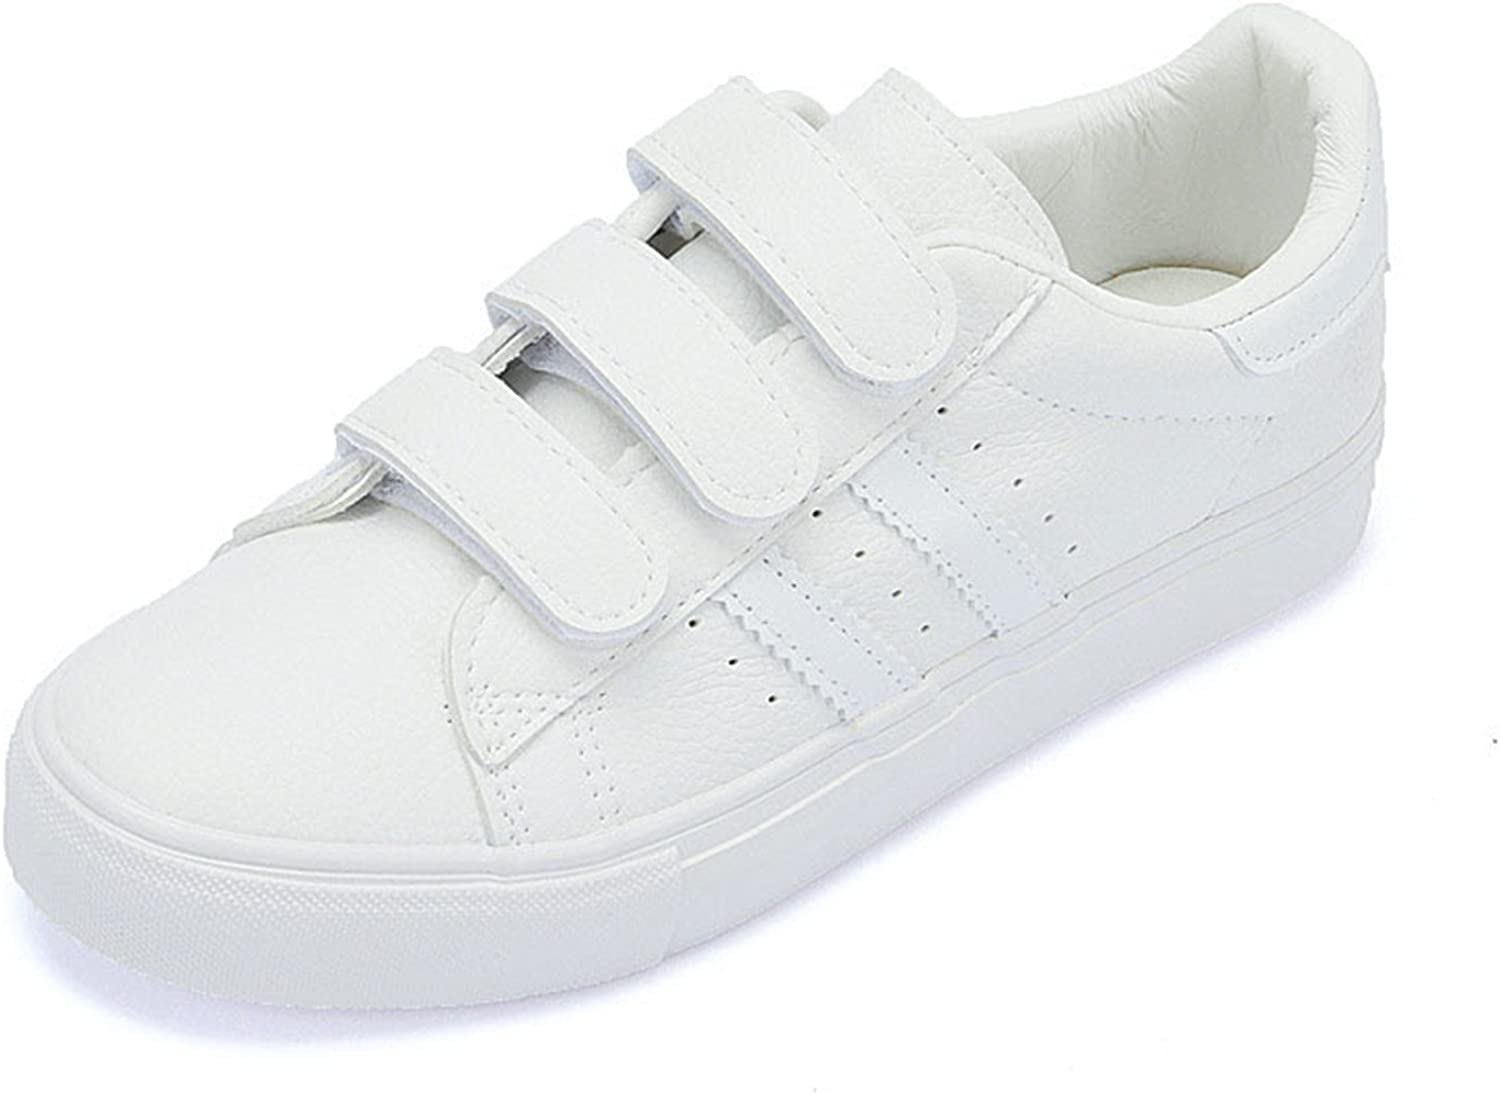 Better Annie shoes Woman Spring New White Lace-up Fashion Women Casual shoes Common Projects Walking shoes Ladies Sneakers shoes